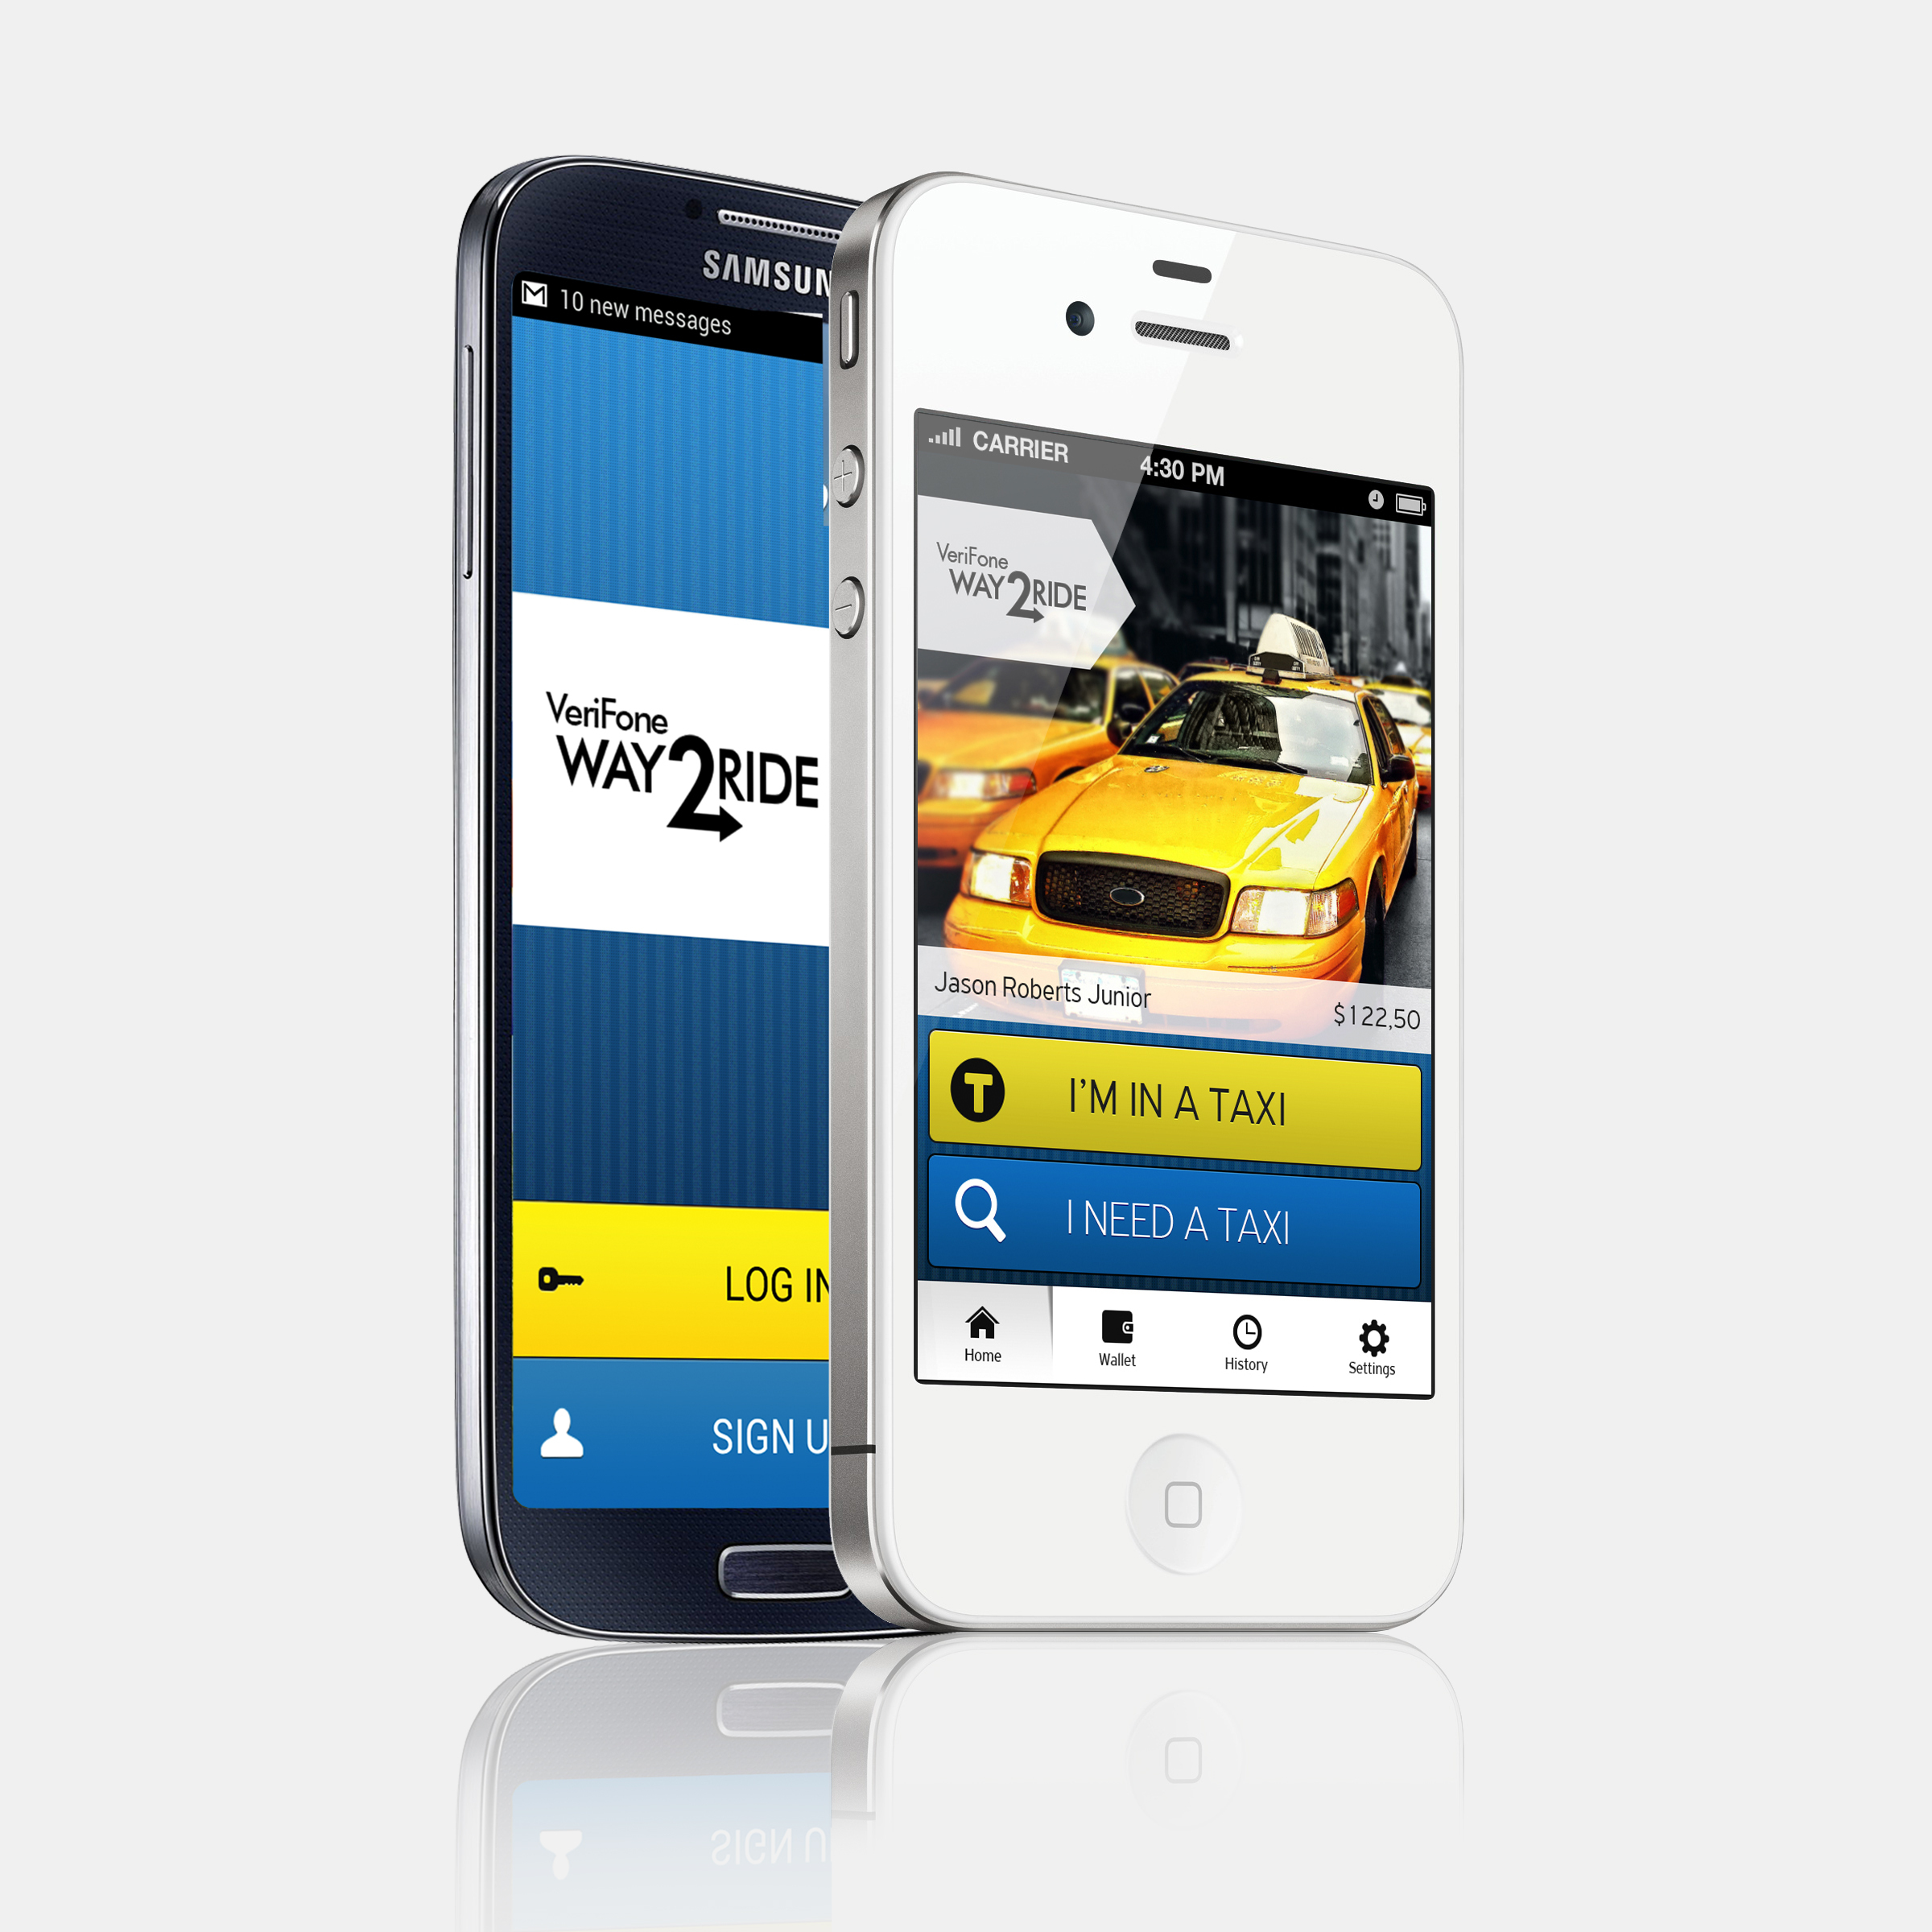 VeriFone Expands Way2ride Mobile App to Philadelphia Taxis